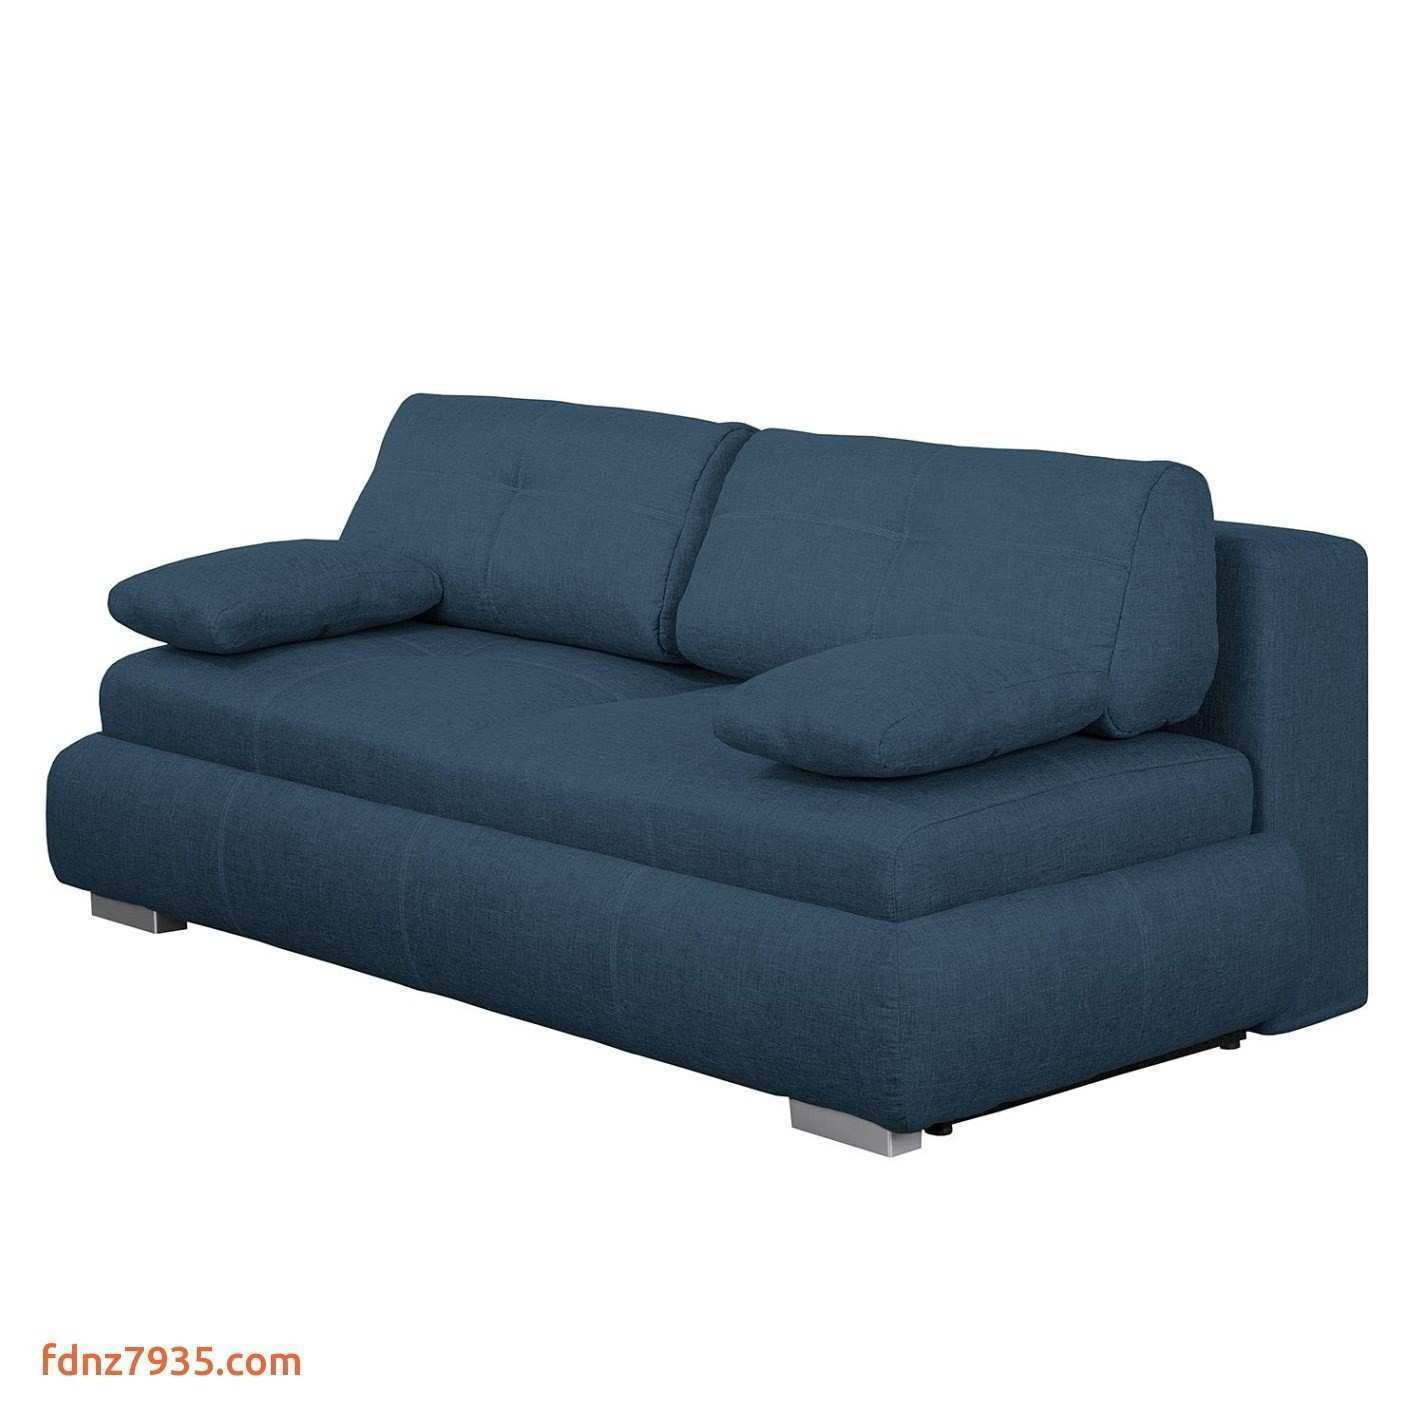 Home Design Standard Futon Size Unique Sofa Sizes Inspirational